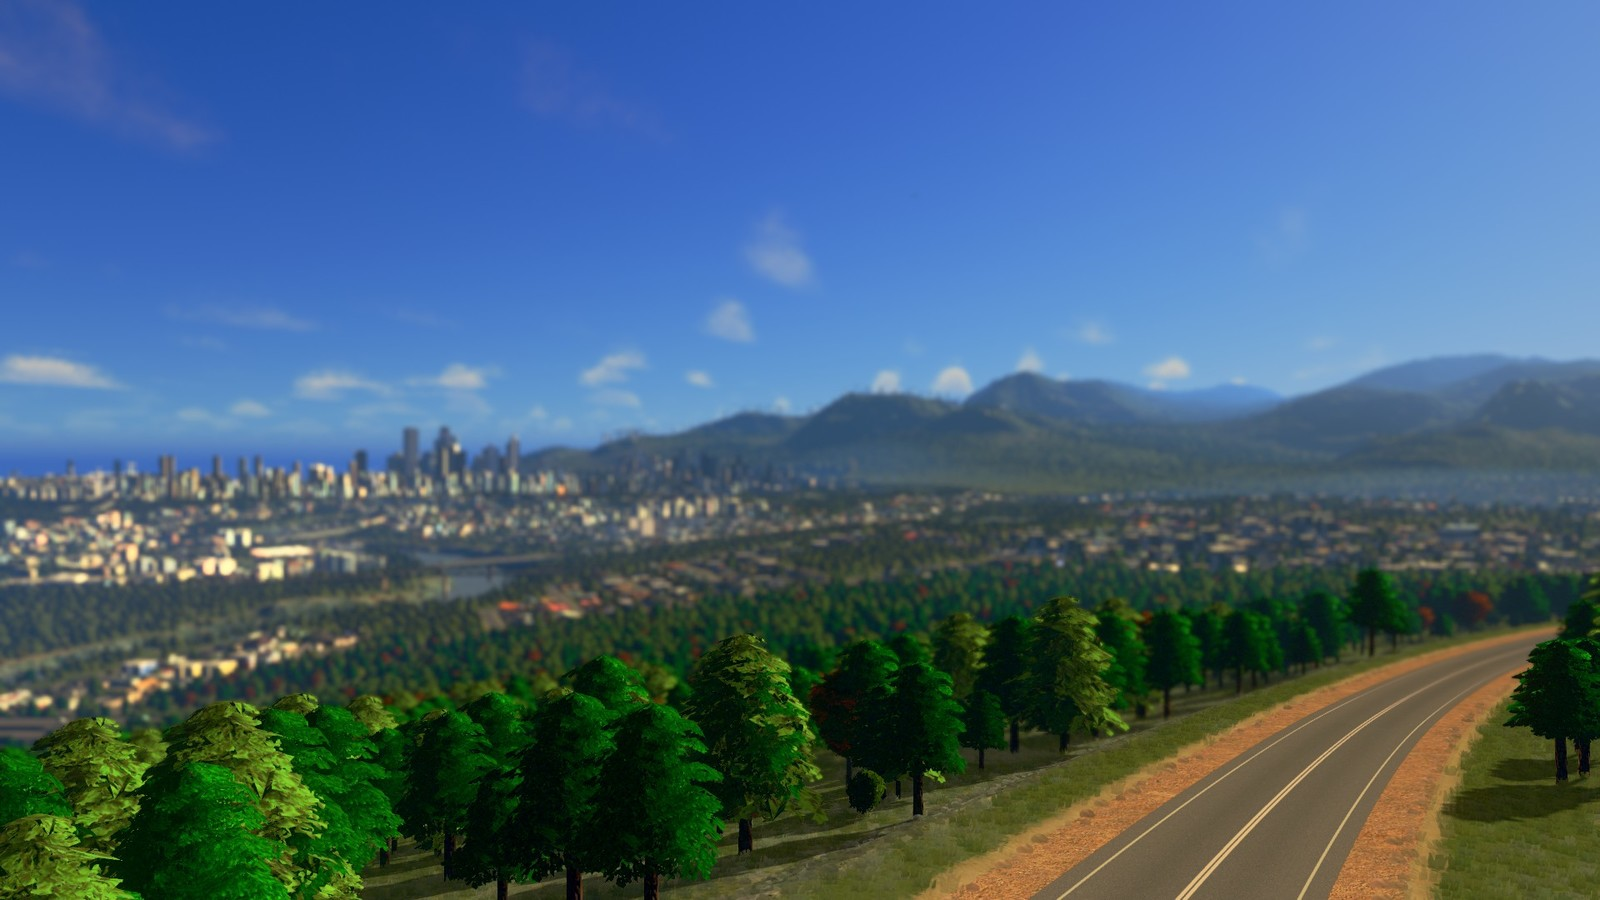 The city rises from the forests